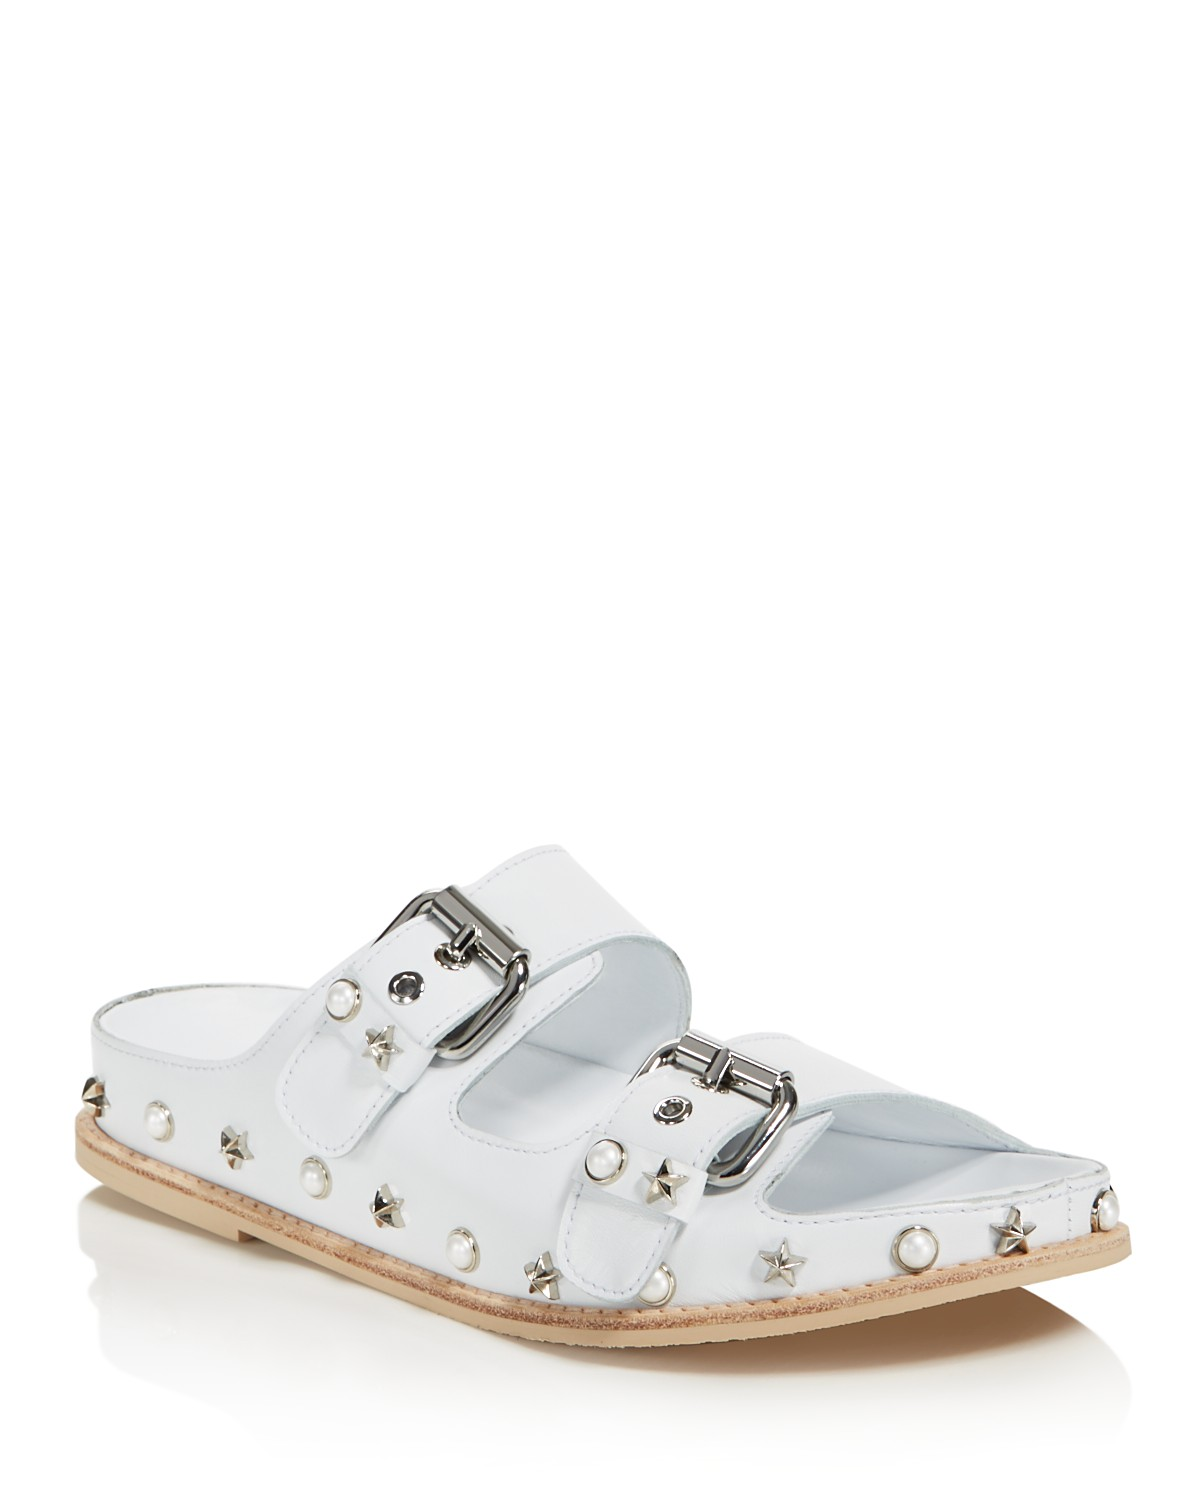 Stuart Weitzman Women's Sandbar Embellished Leather Sandals NTKMX